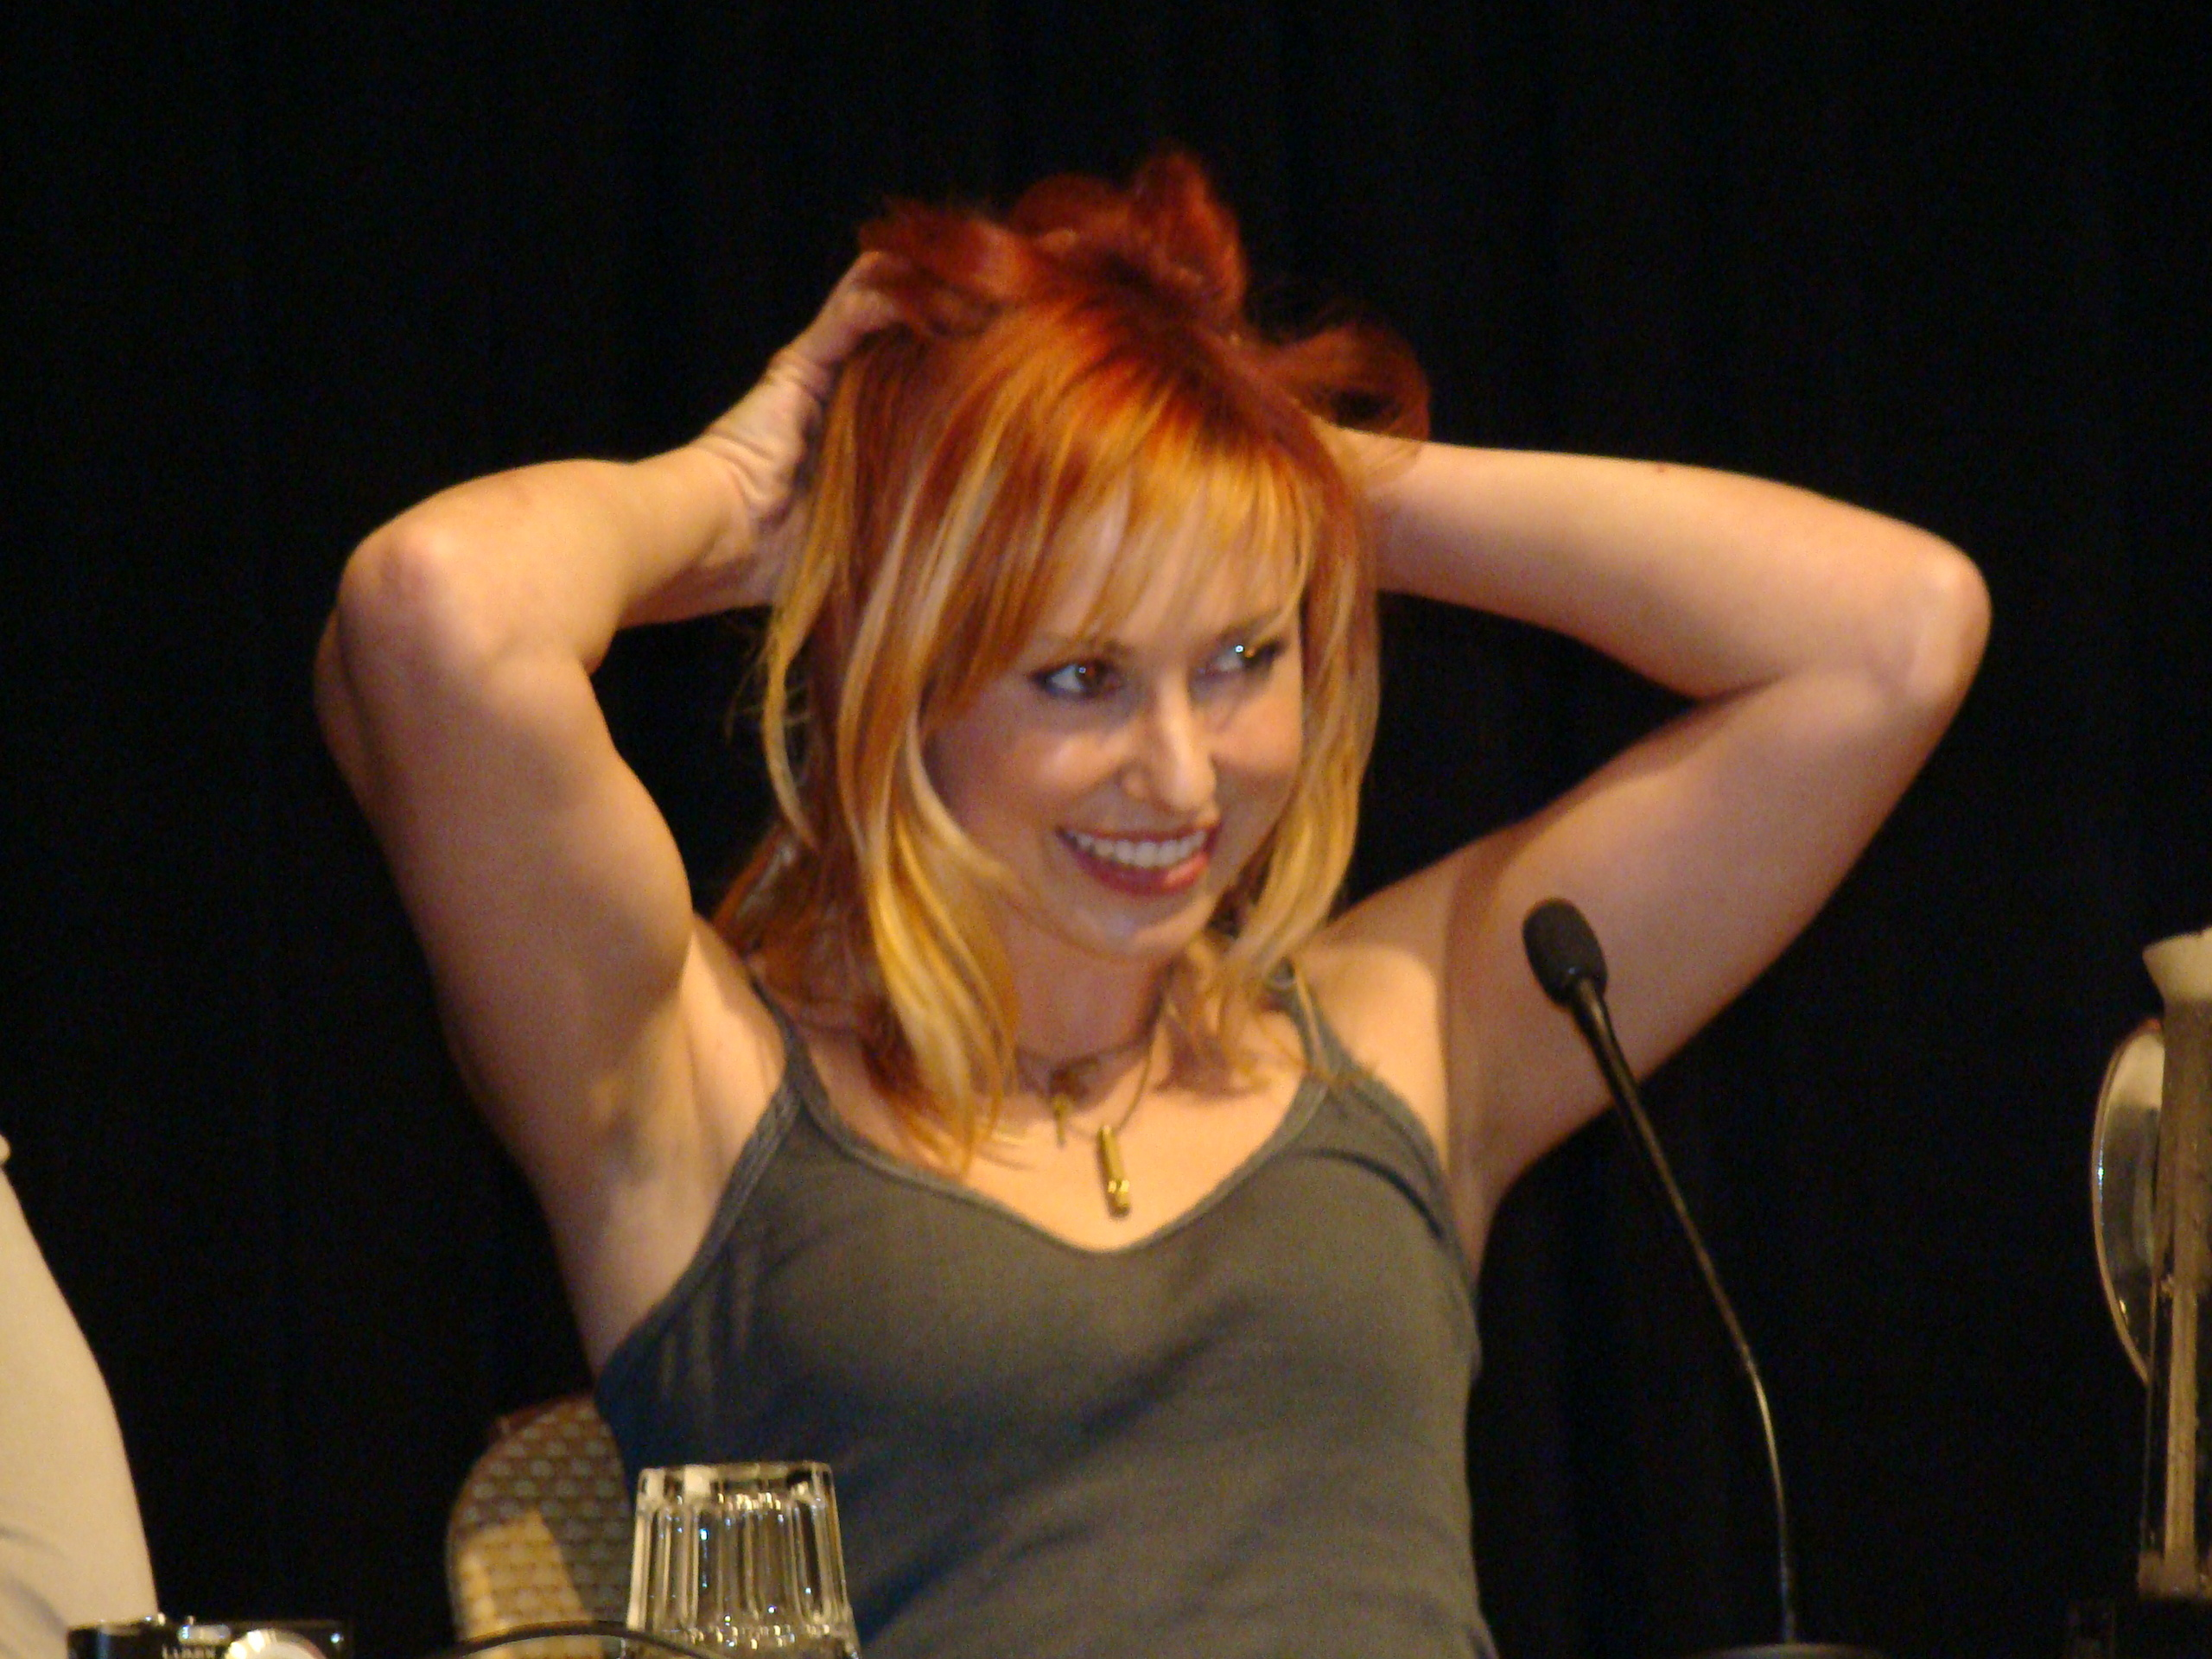 Kari byron butt naked, anal sex prices